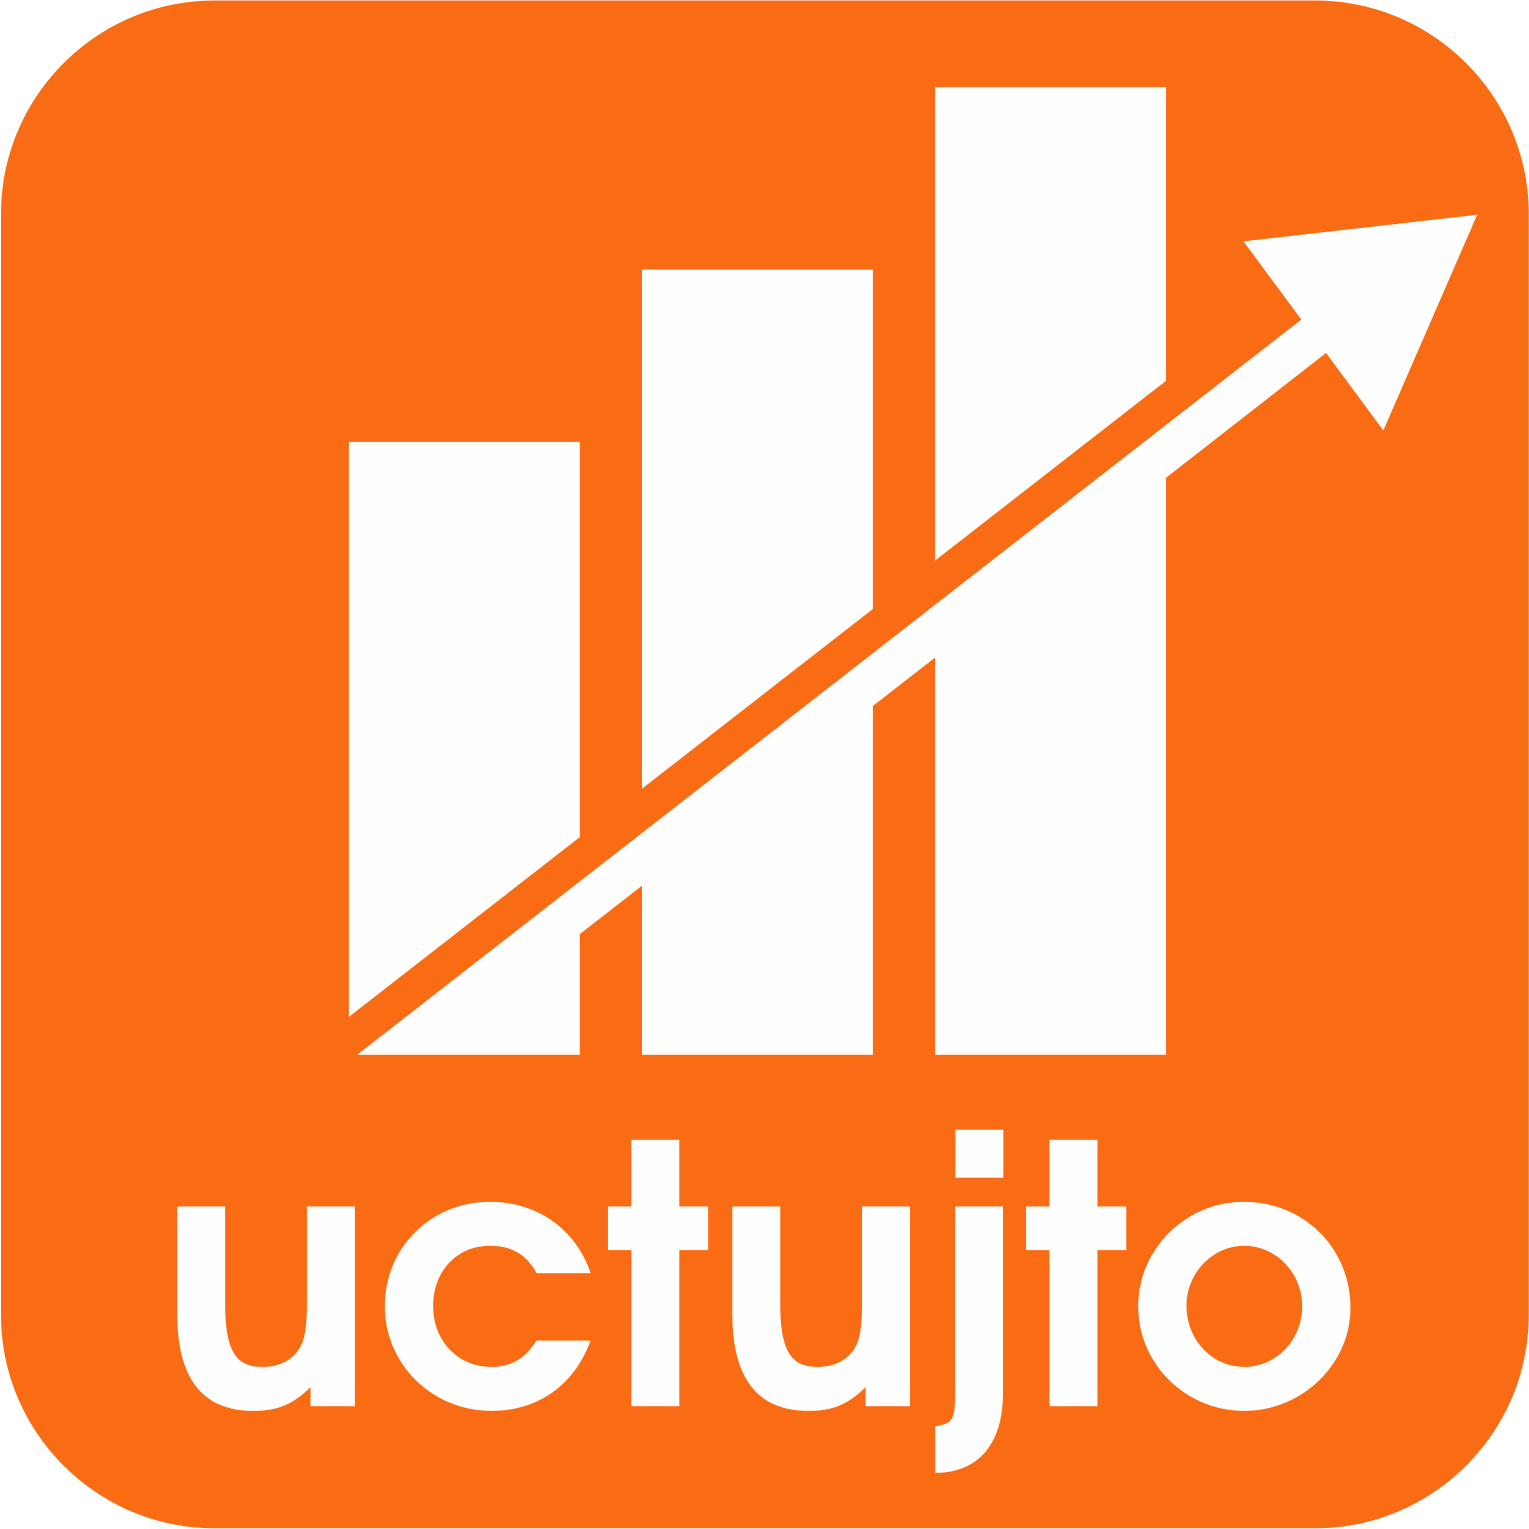 Uctujto.sk